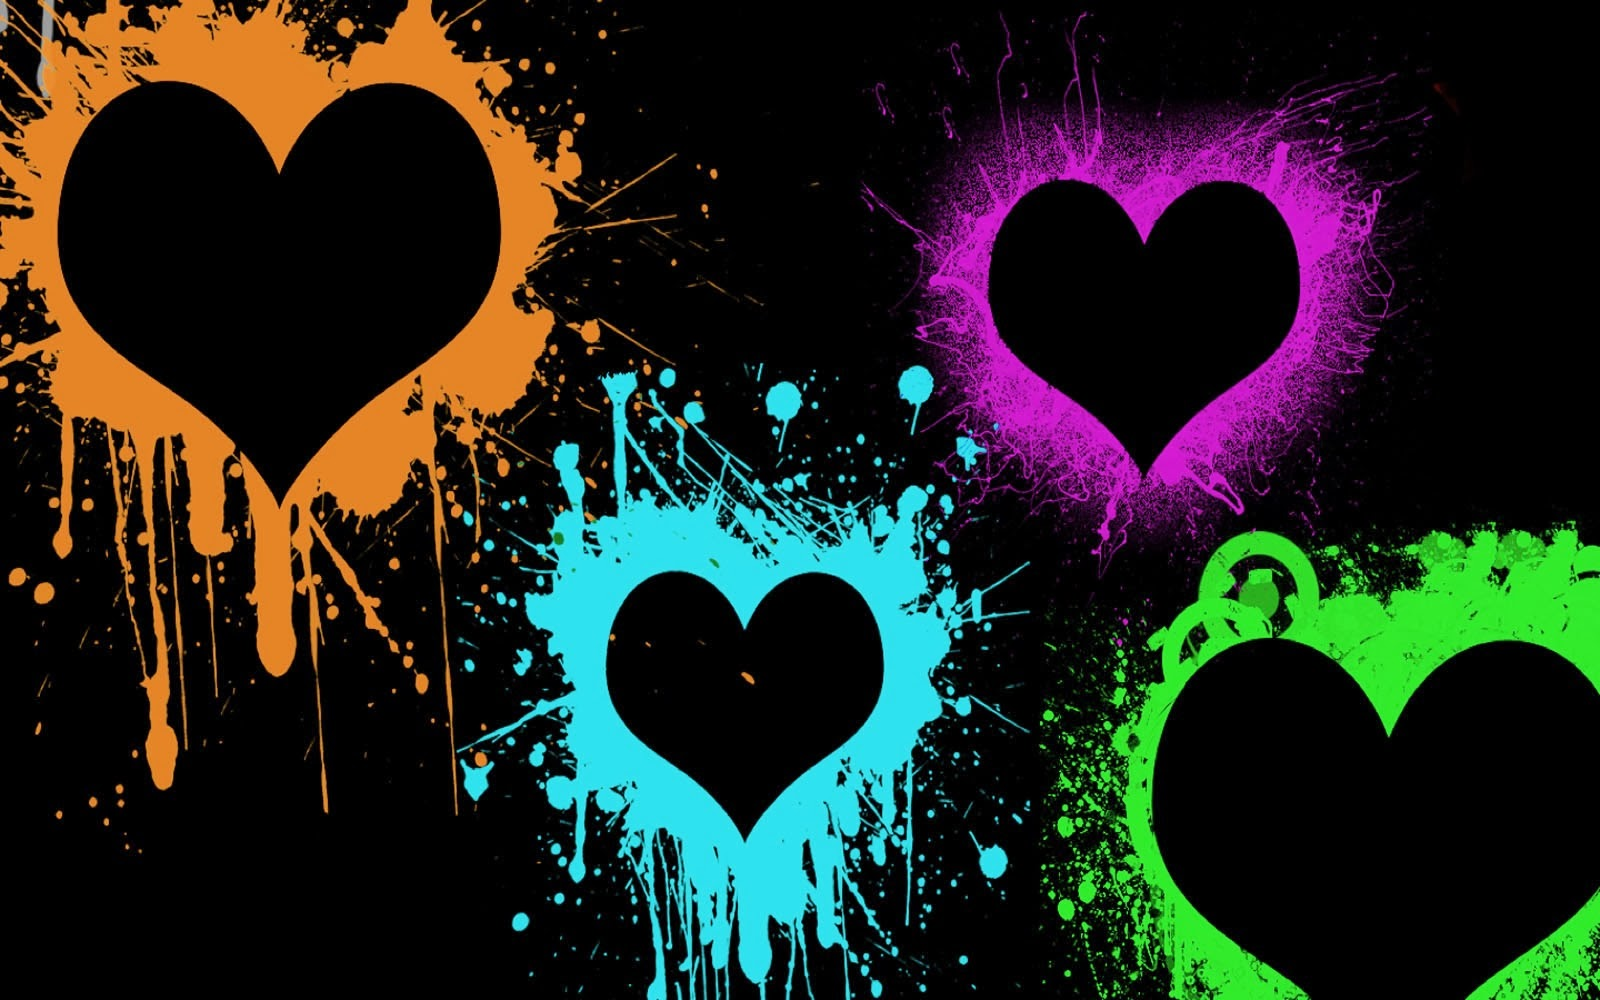 Lovable Images: Heart Love Pictures Free Download || Love Paint Wallpapers || Heart Paintings ...